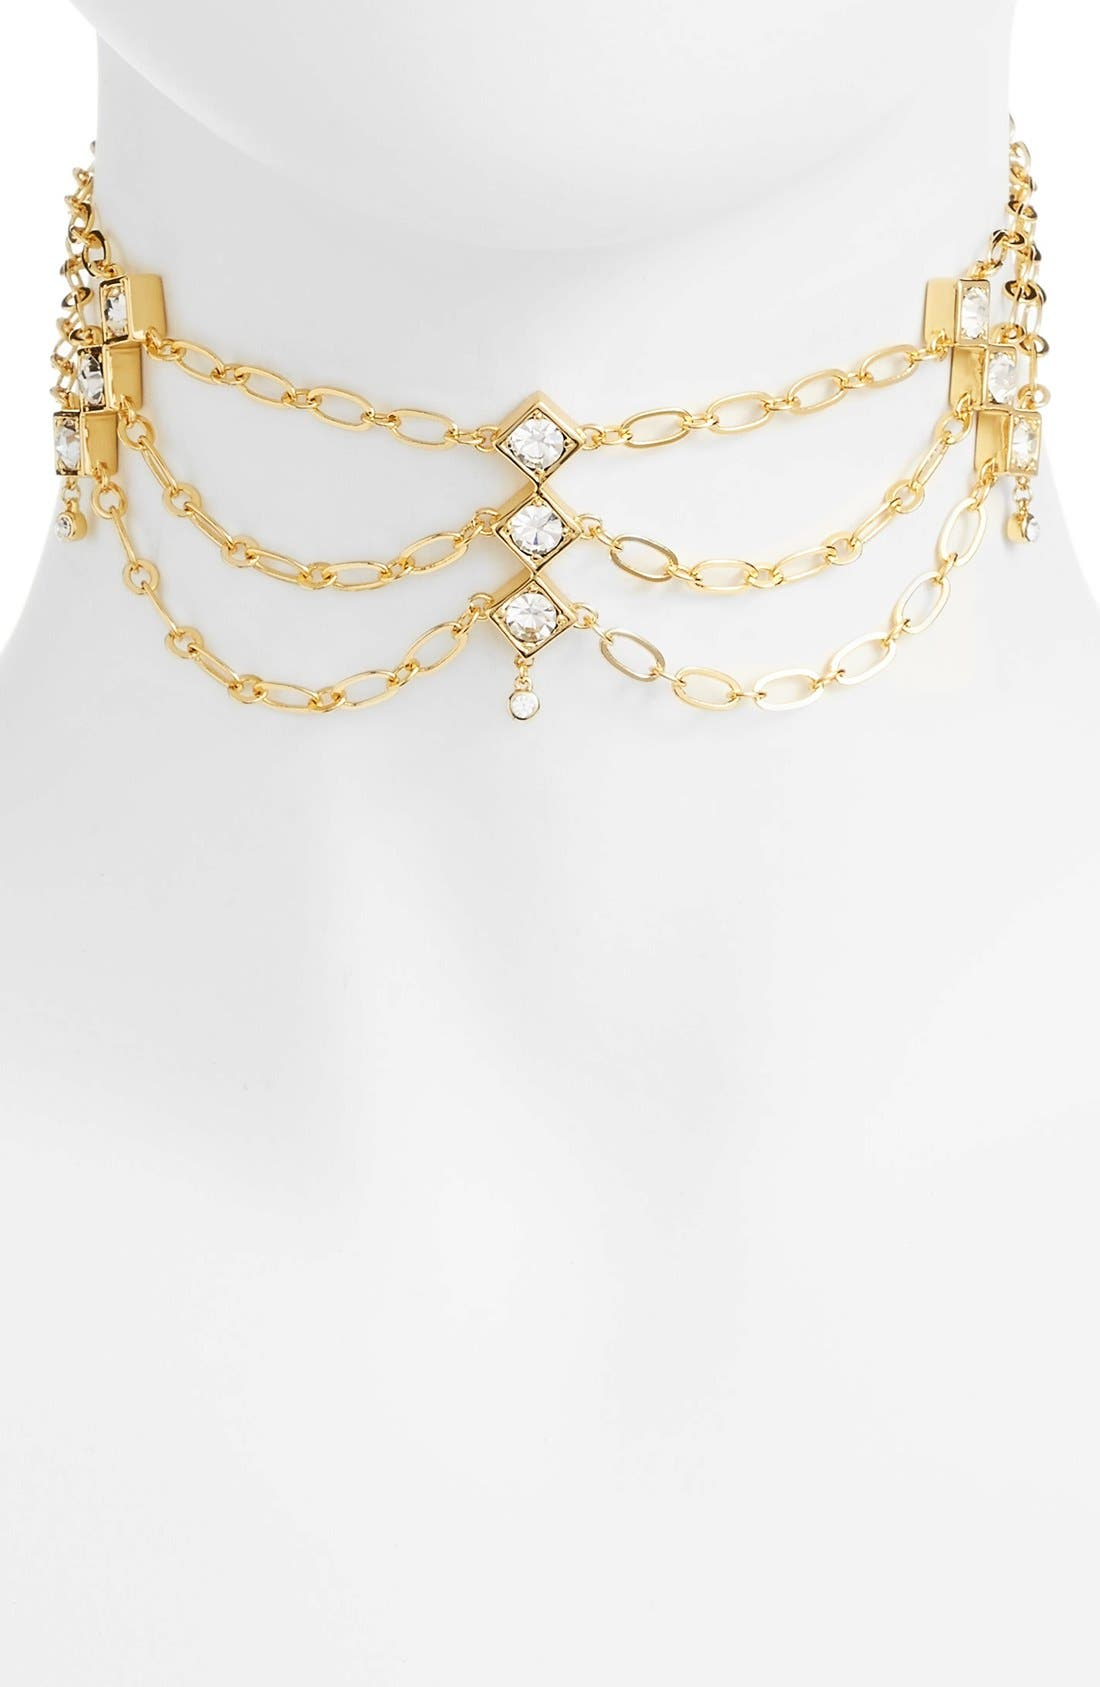 Main Image - Jules Smith Tulum Layered Choker